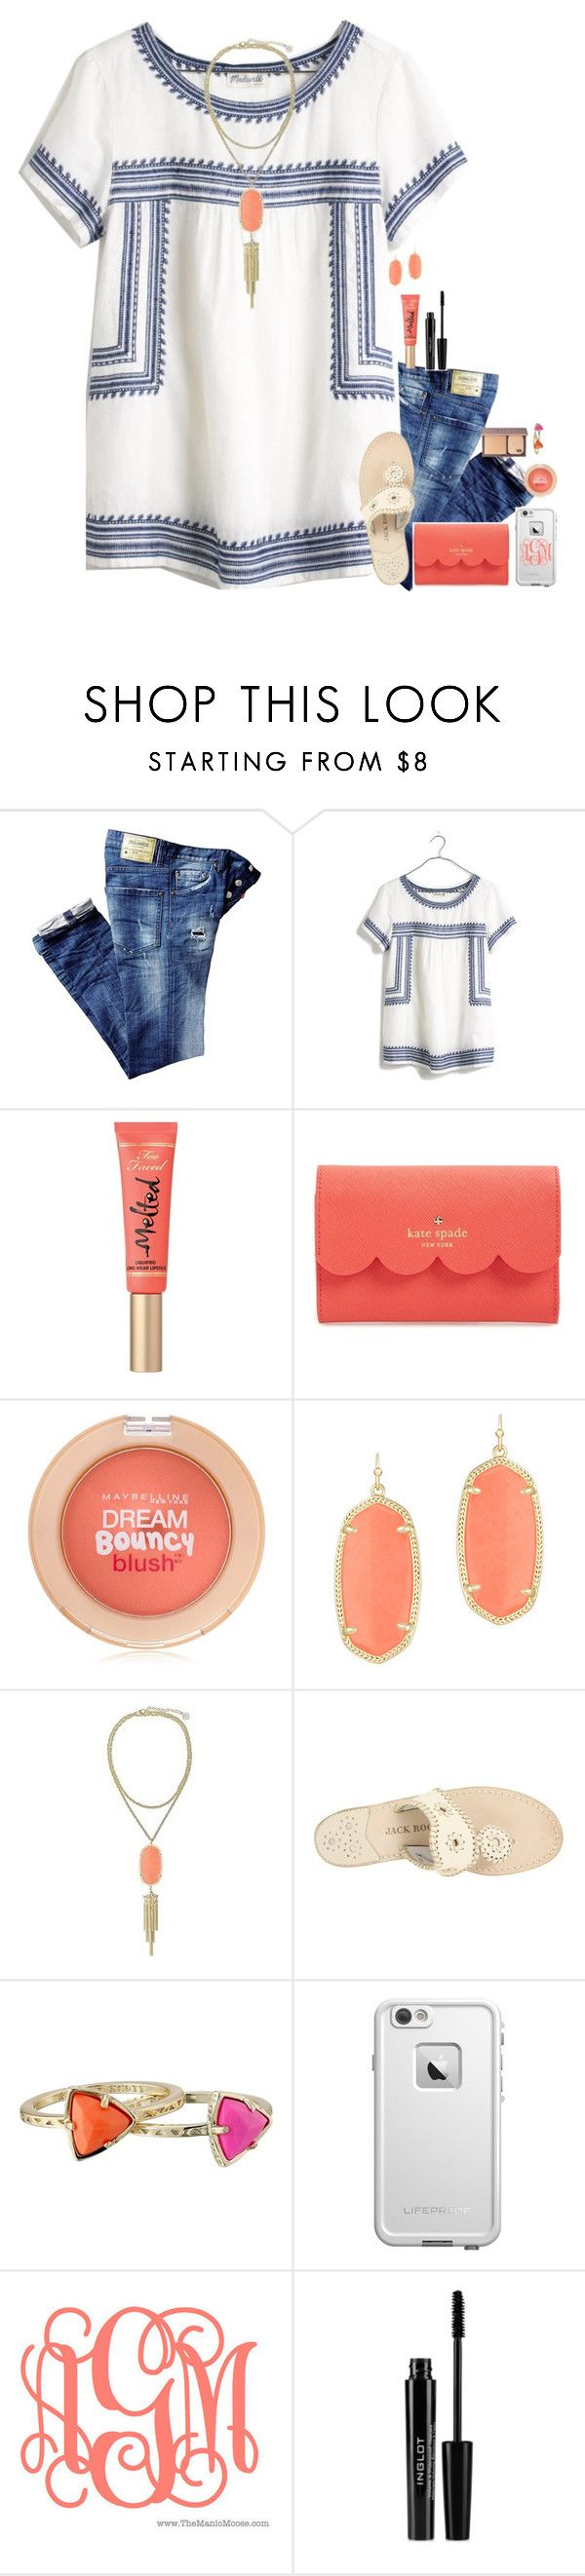 """Abby!"" by sdyerrtx ❤ liked on Polyvore featuring Madewell, Too Faced Cosmetics, Kate Spade, Maybelline, Kendra Scott, Jack Rogers, LifeProof, Inglot and Urban Decay"